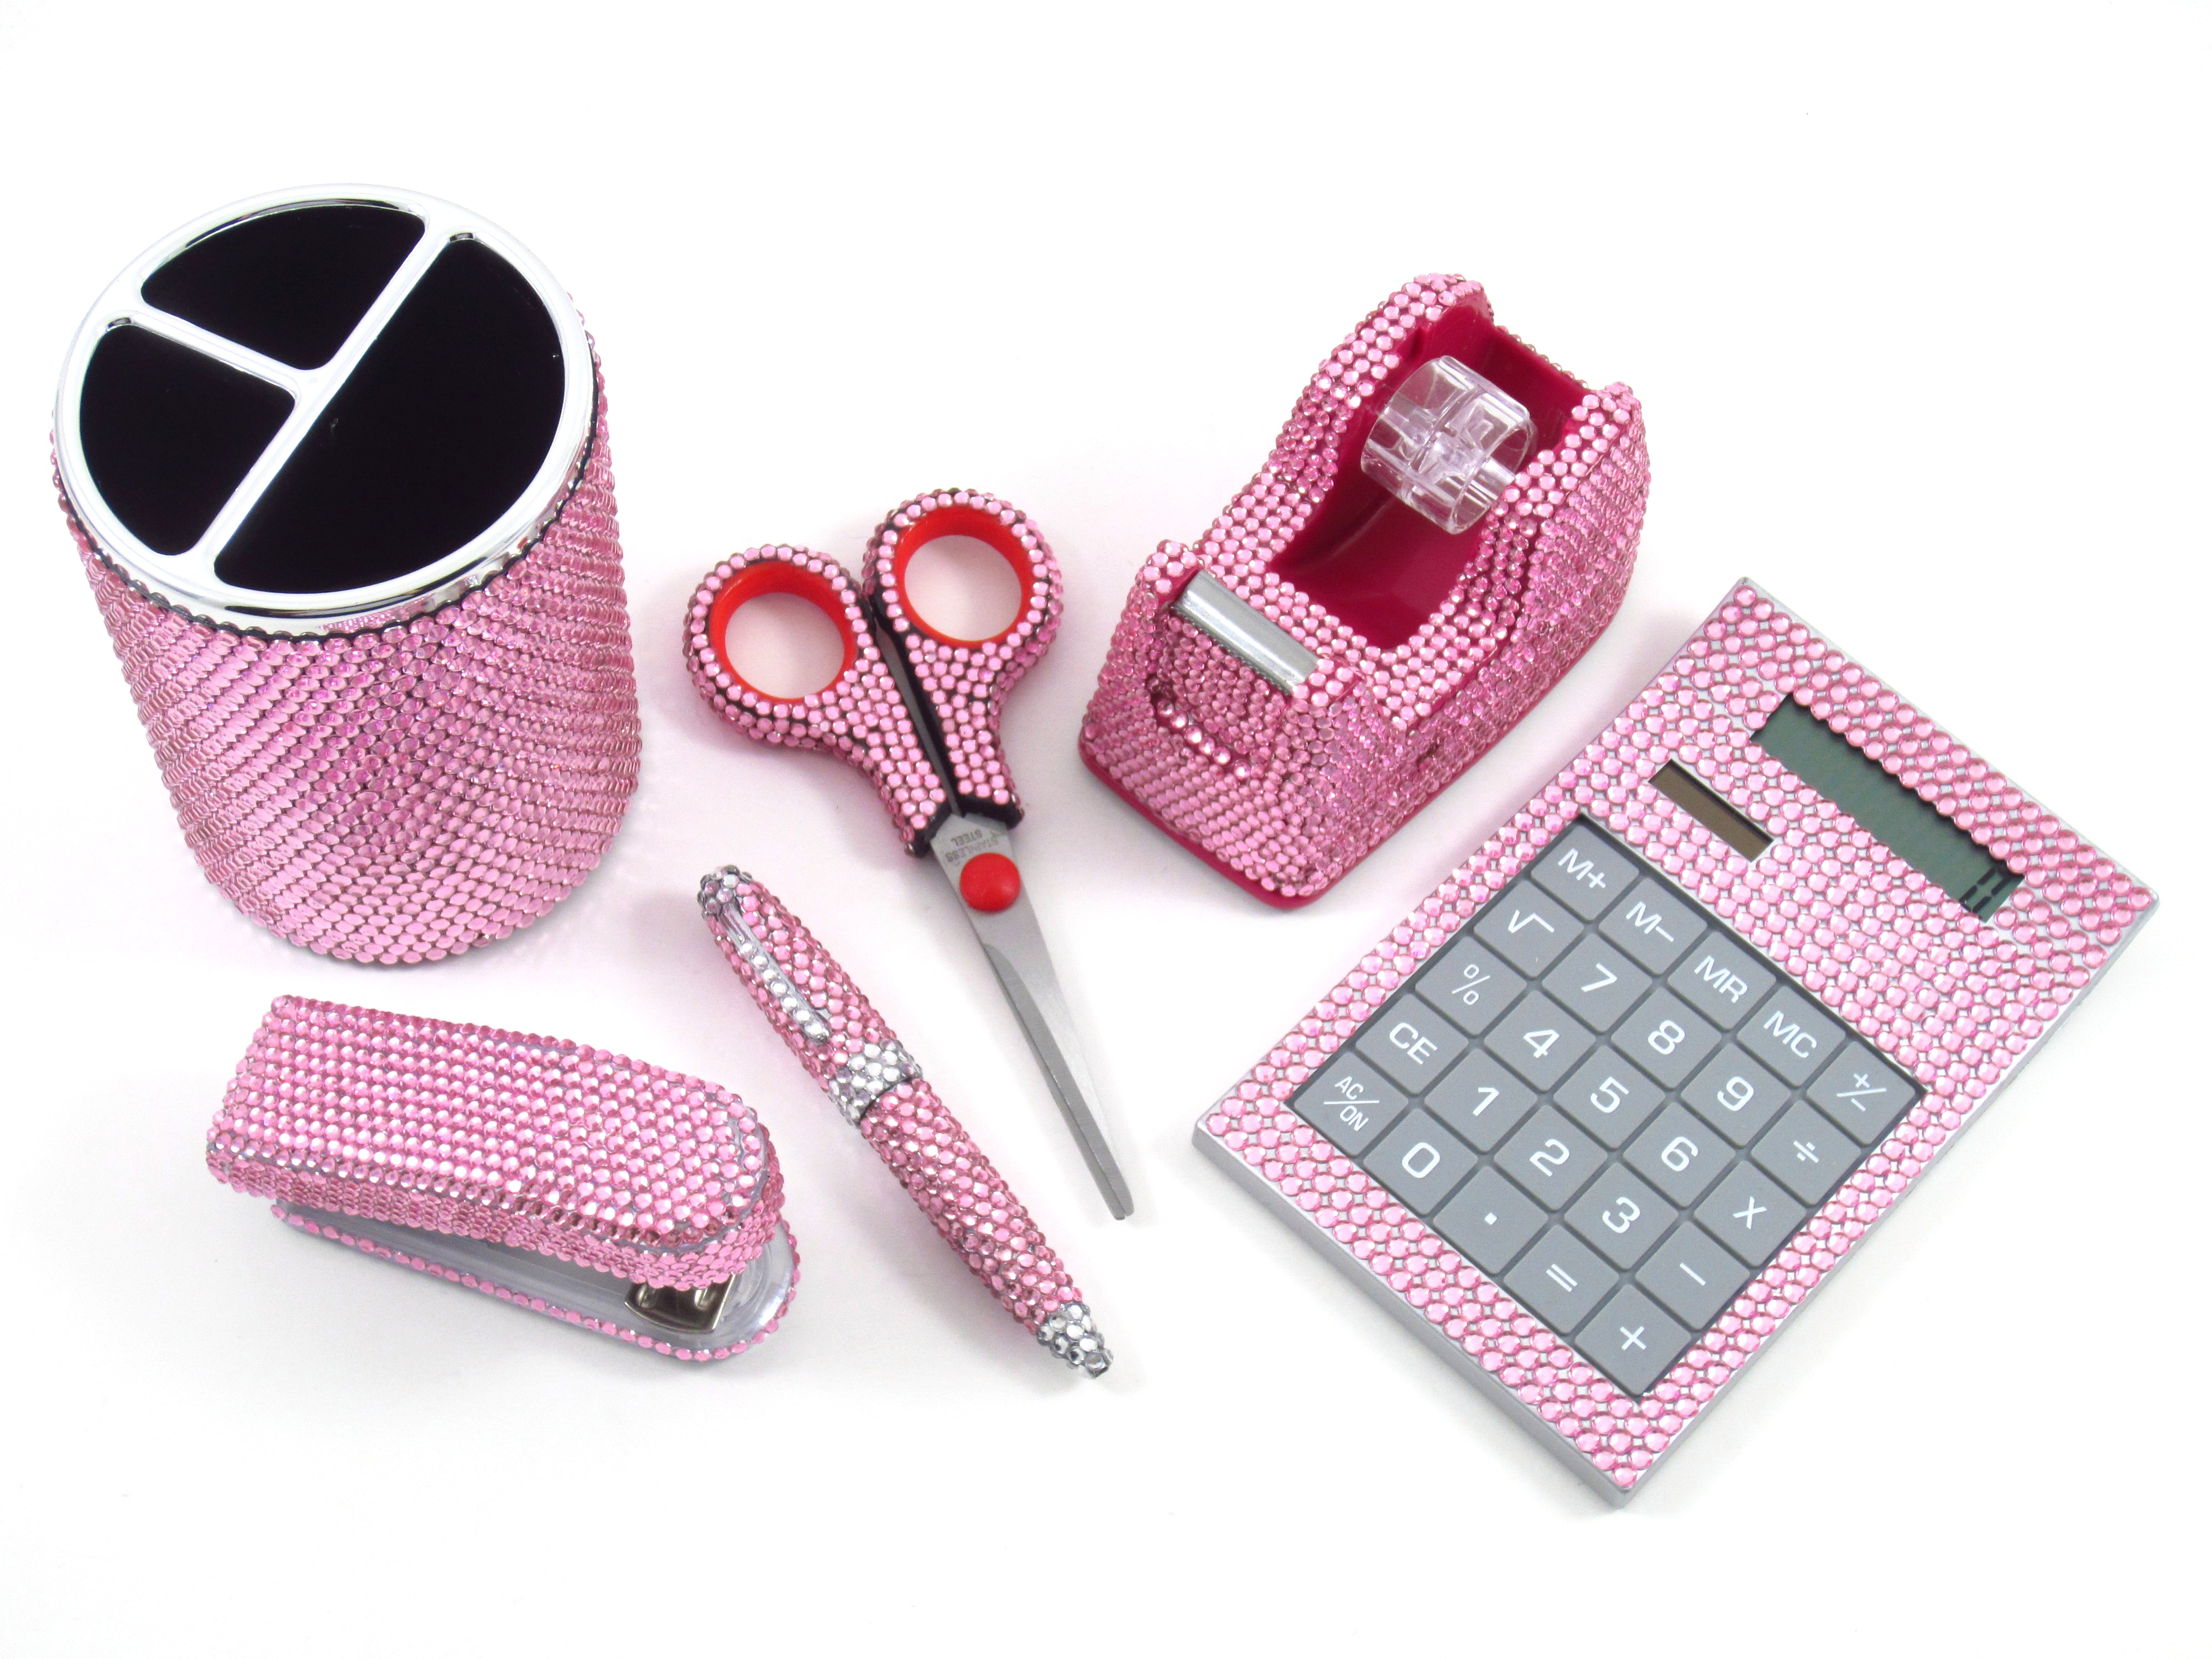 Pen And Holder Set Pink Crystal Office Supply Set Pen Holder Scissors